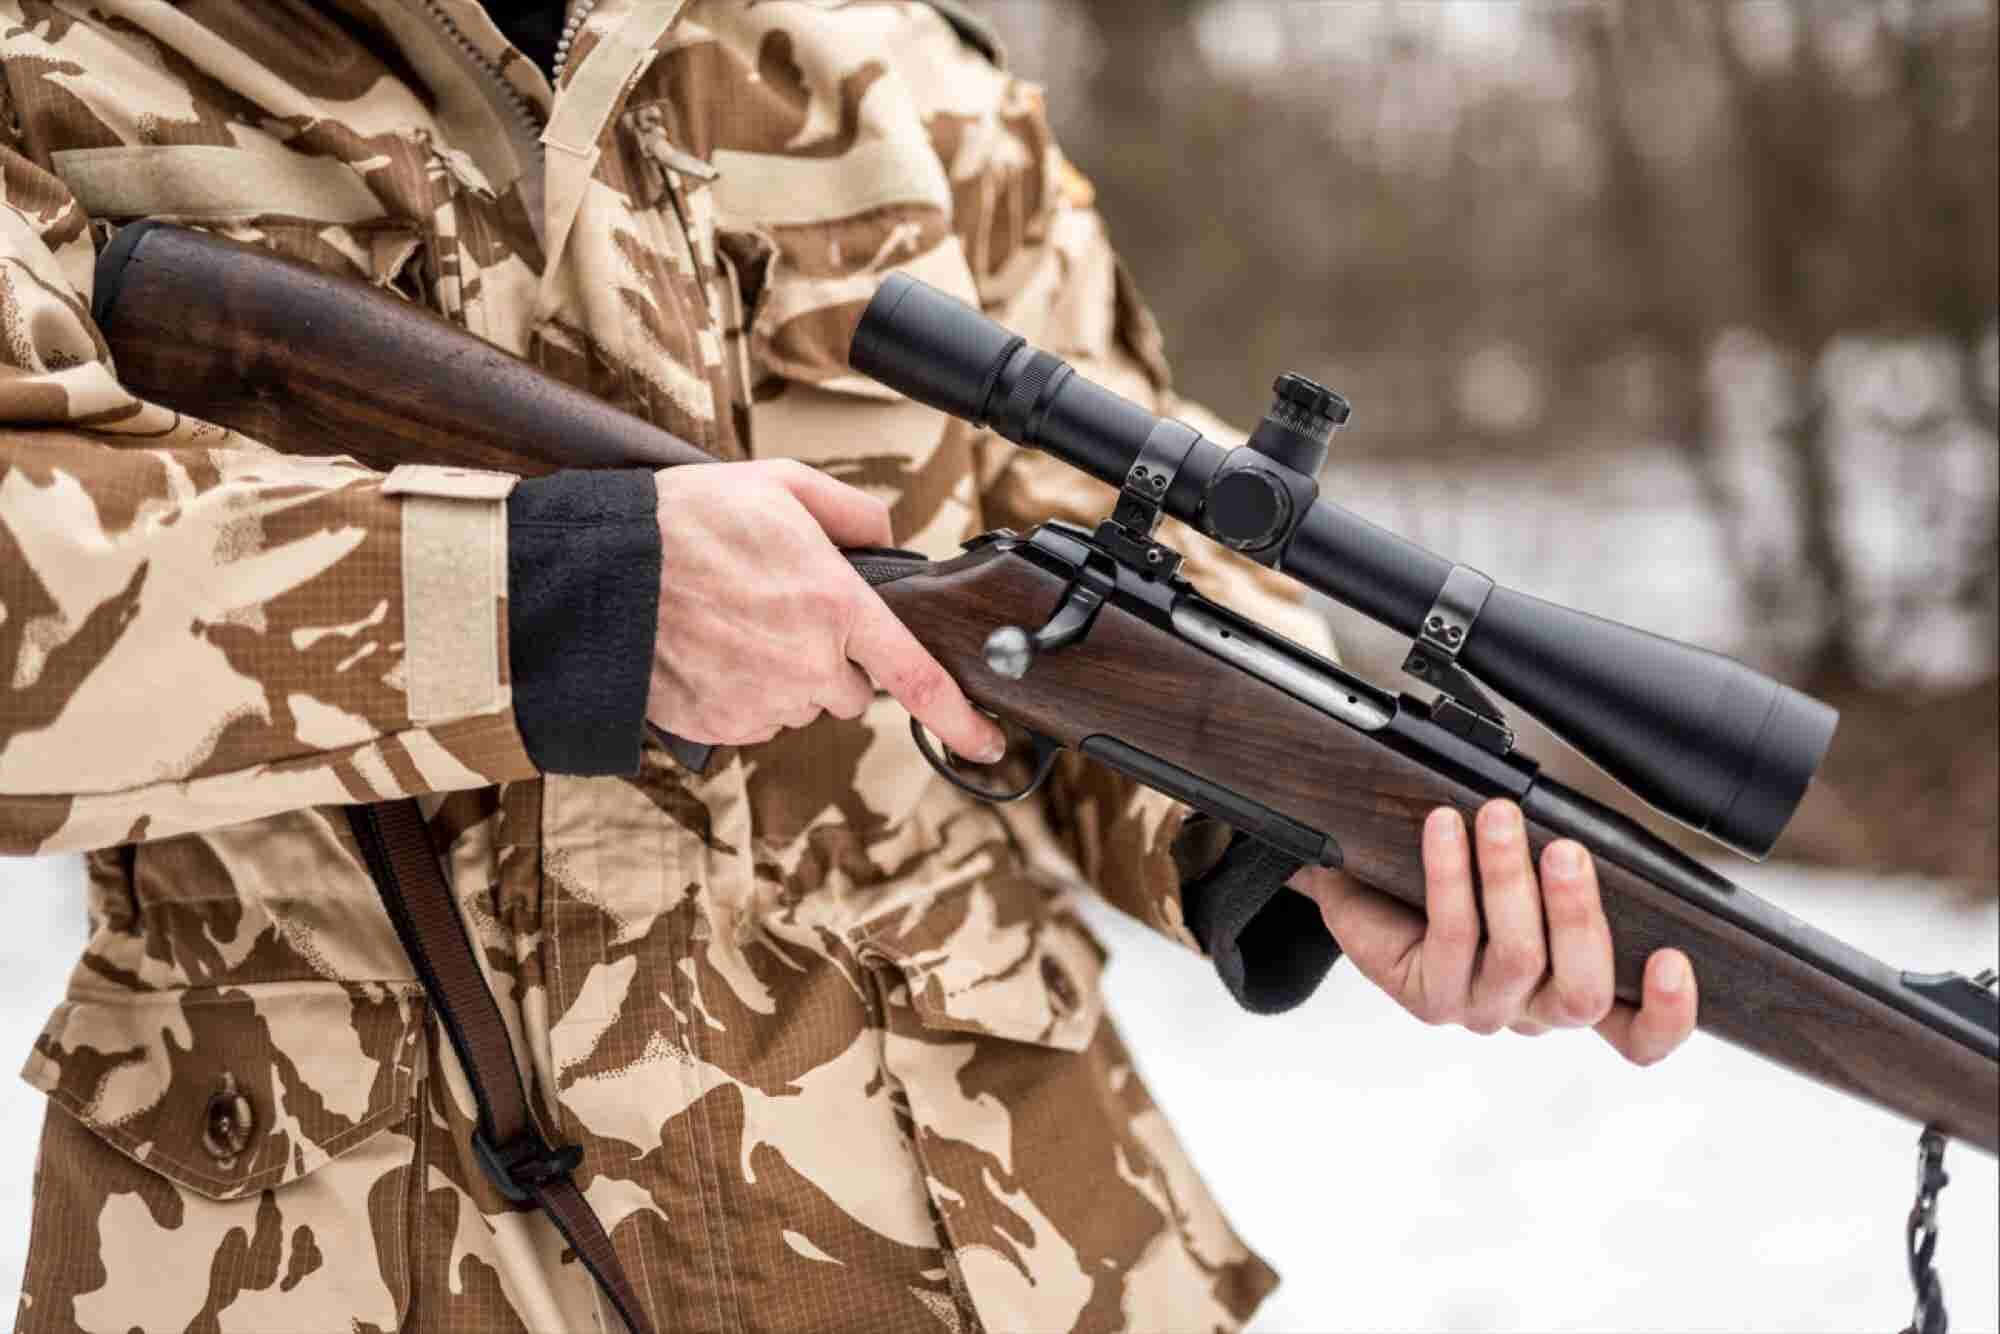 3 Focus Tips I Learned From Shooting a Sniper Rifle With a Psychologist and a Navy SEAL